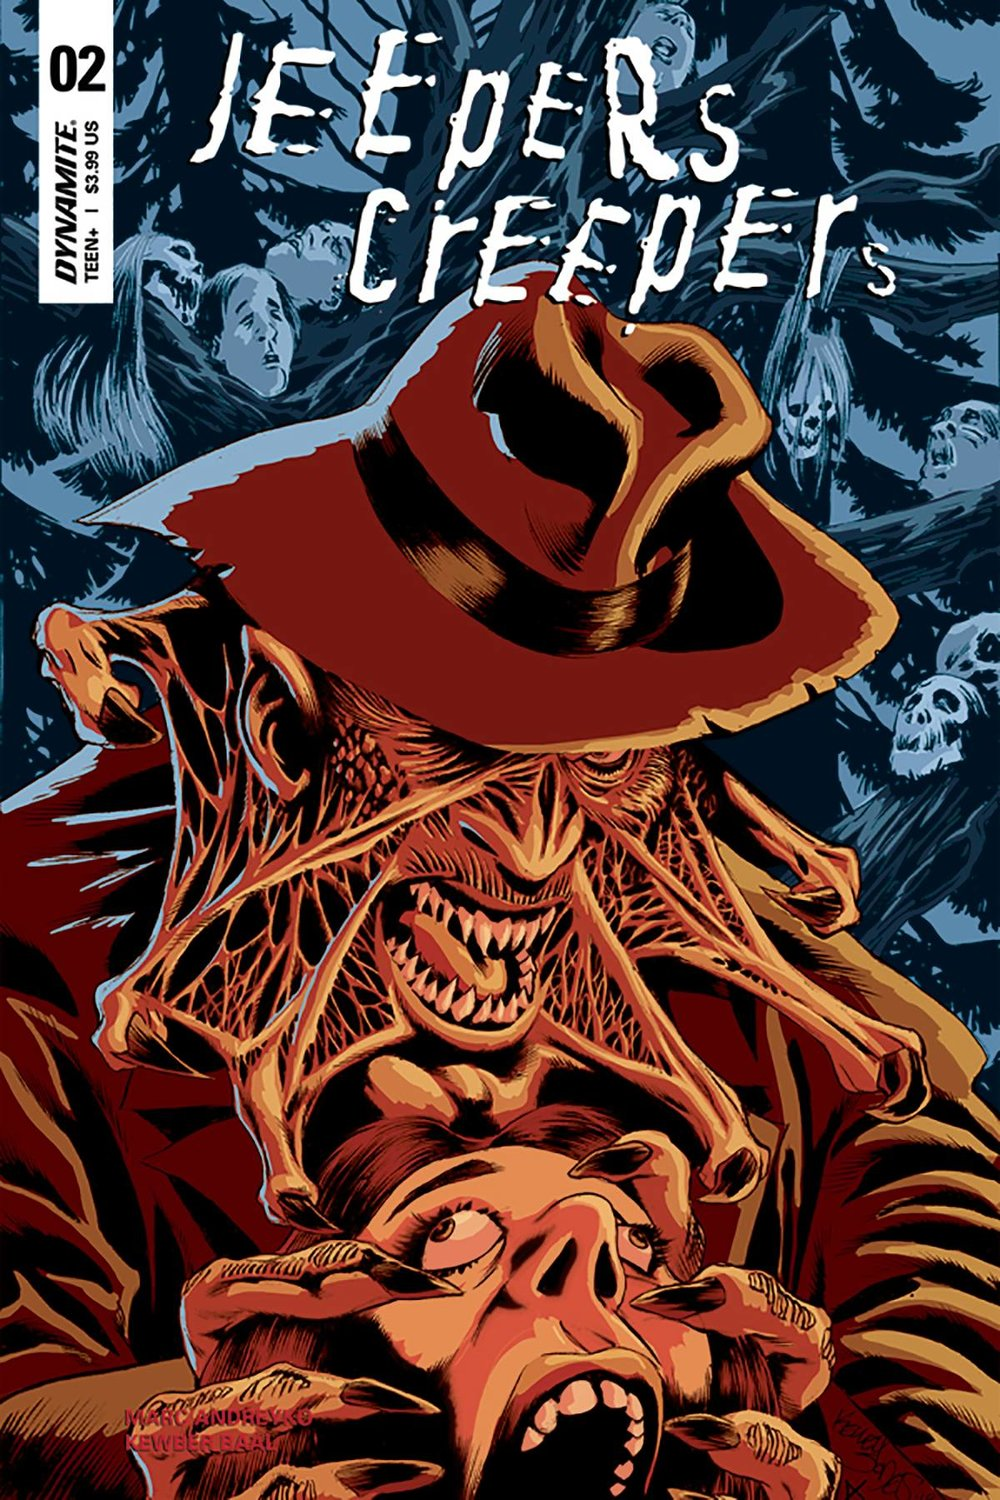 JEEPERS CREEPERS 2 CVR A JONES.jpg